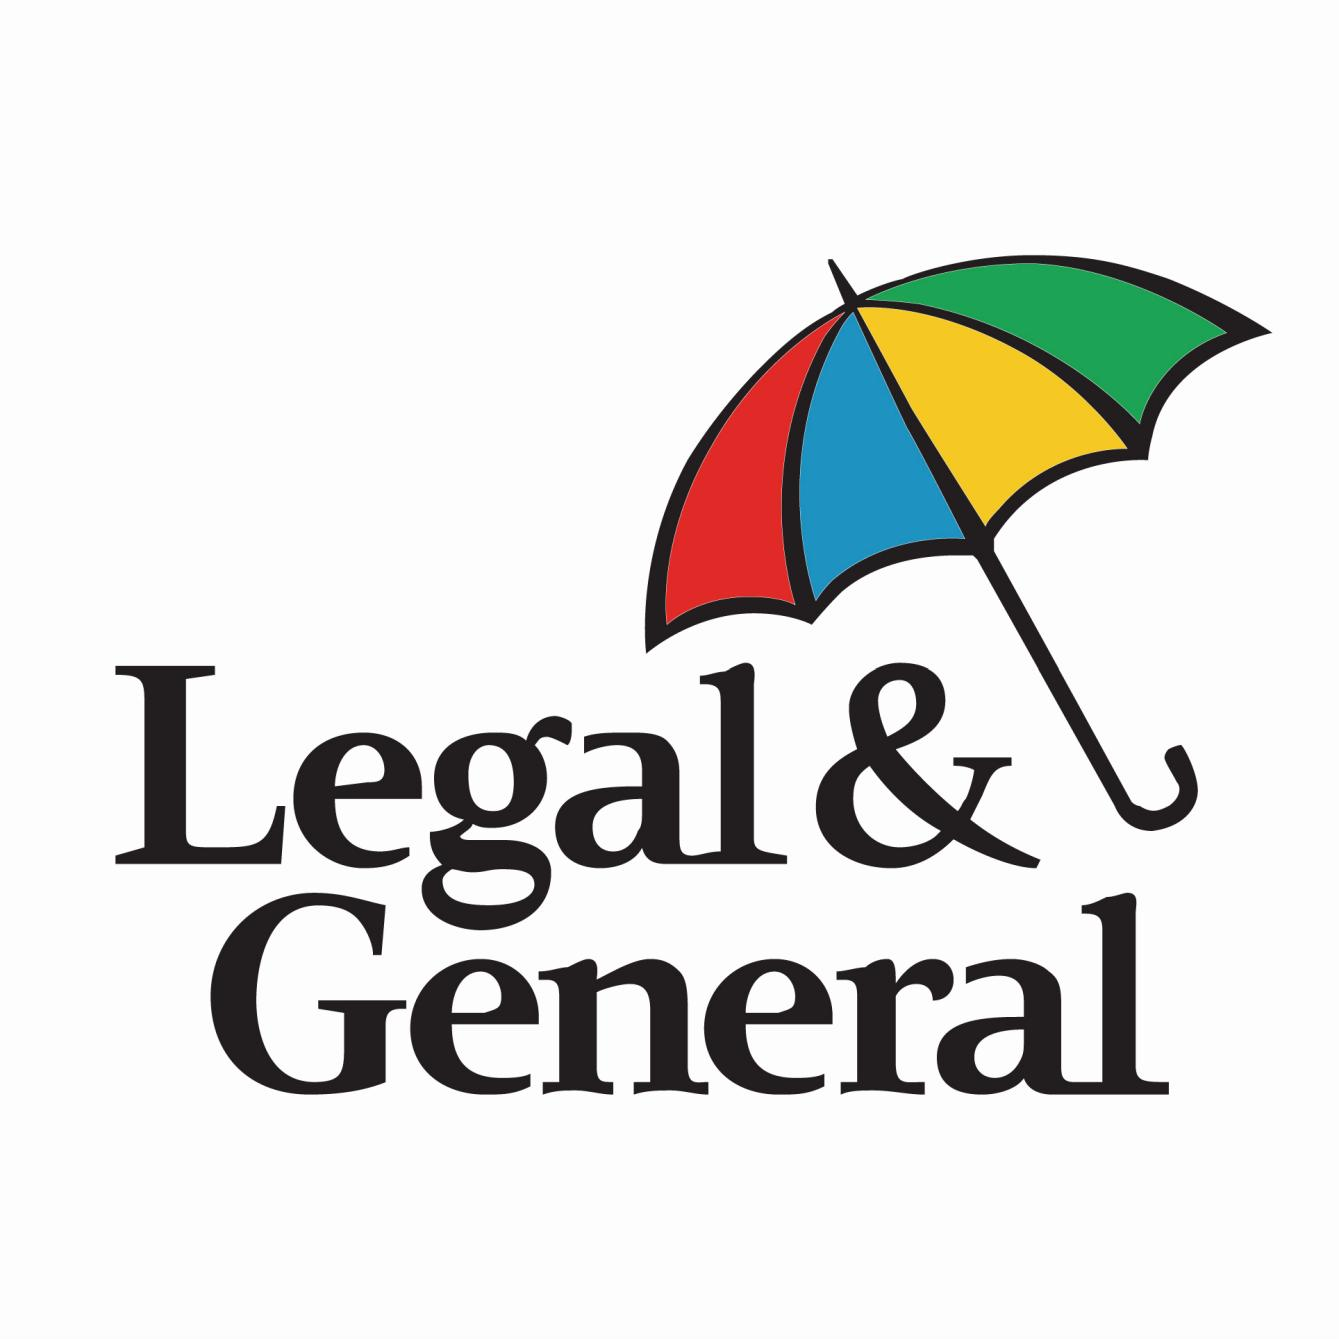 Legal & General Group Logo [AI PDF Files]